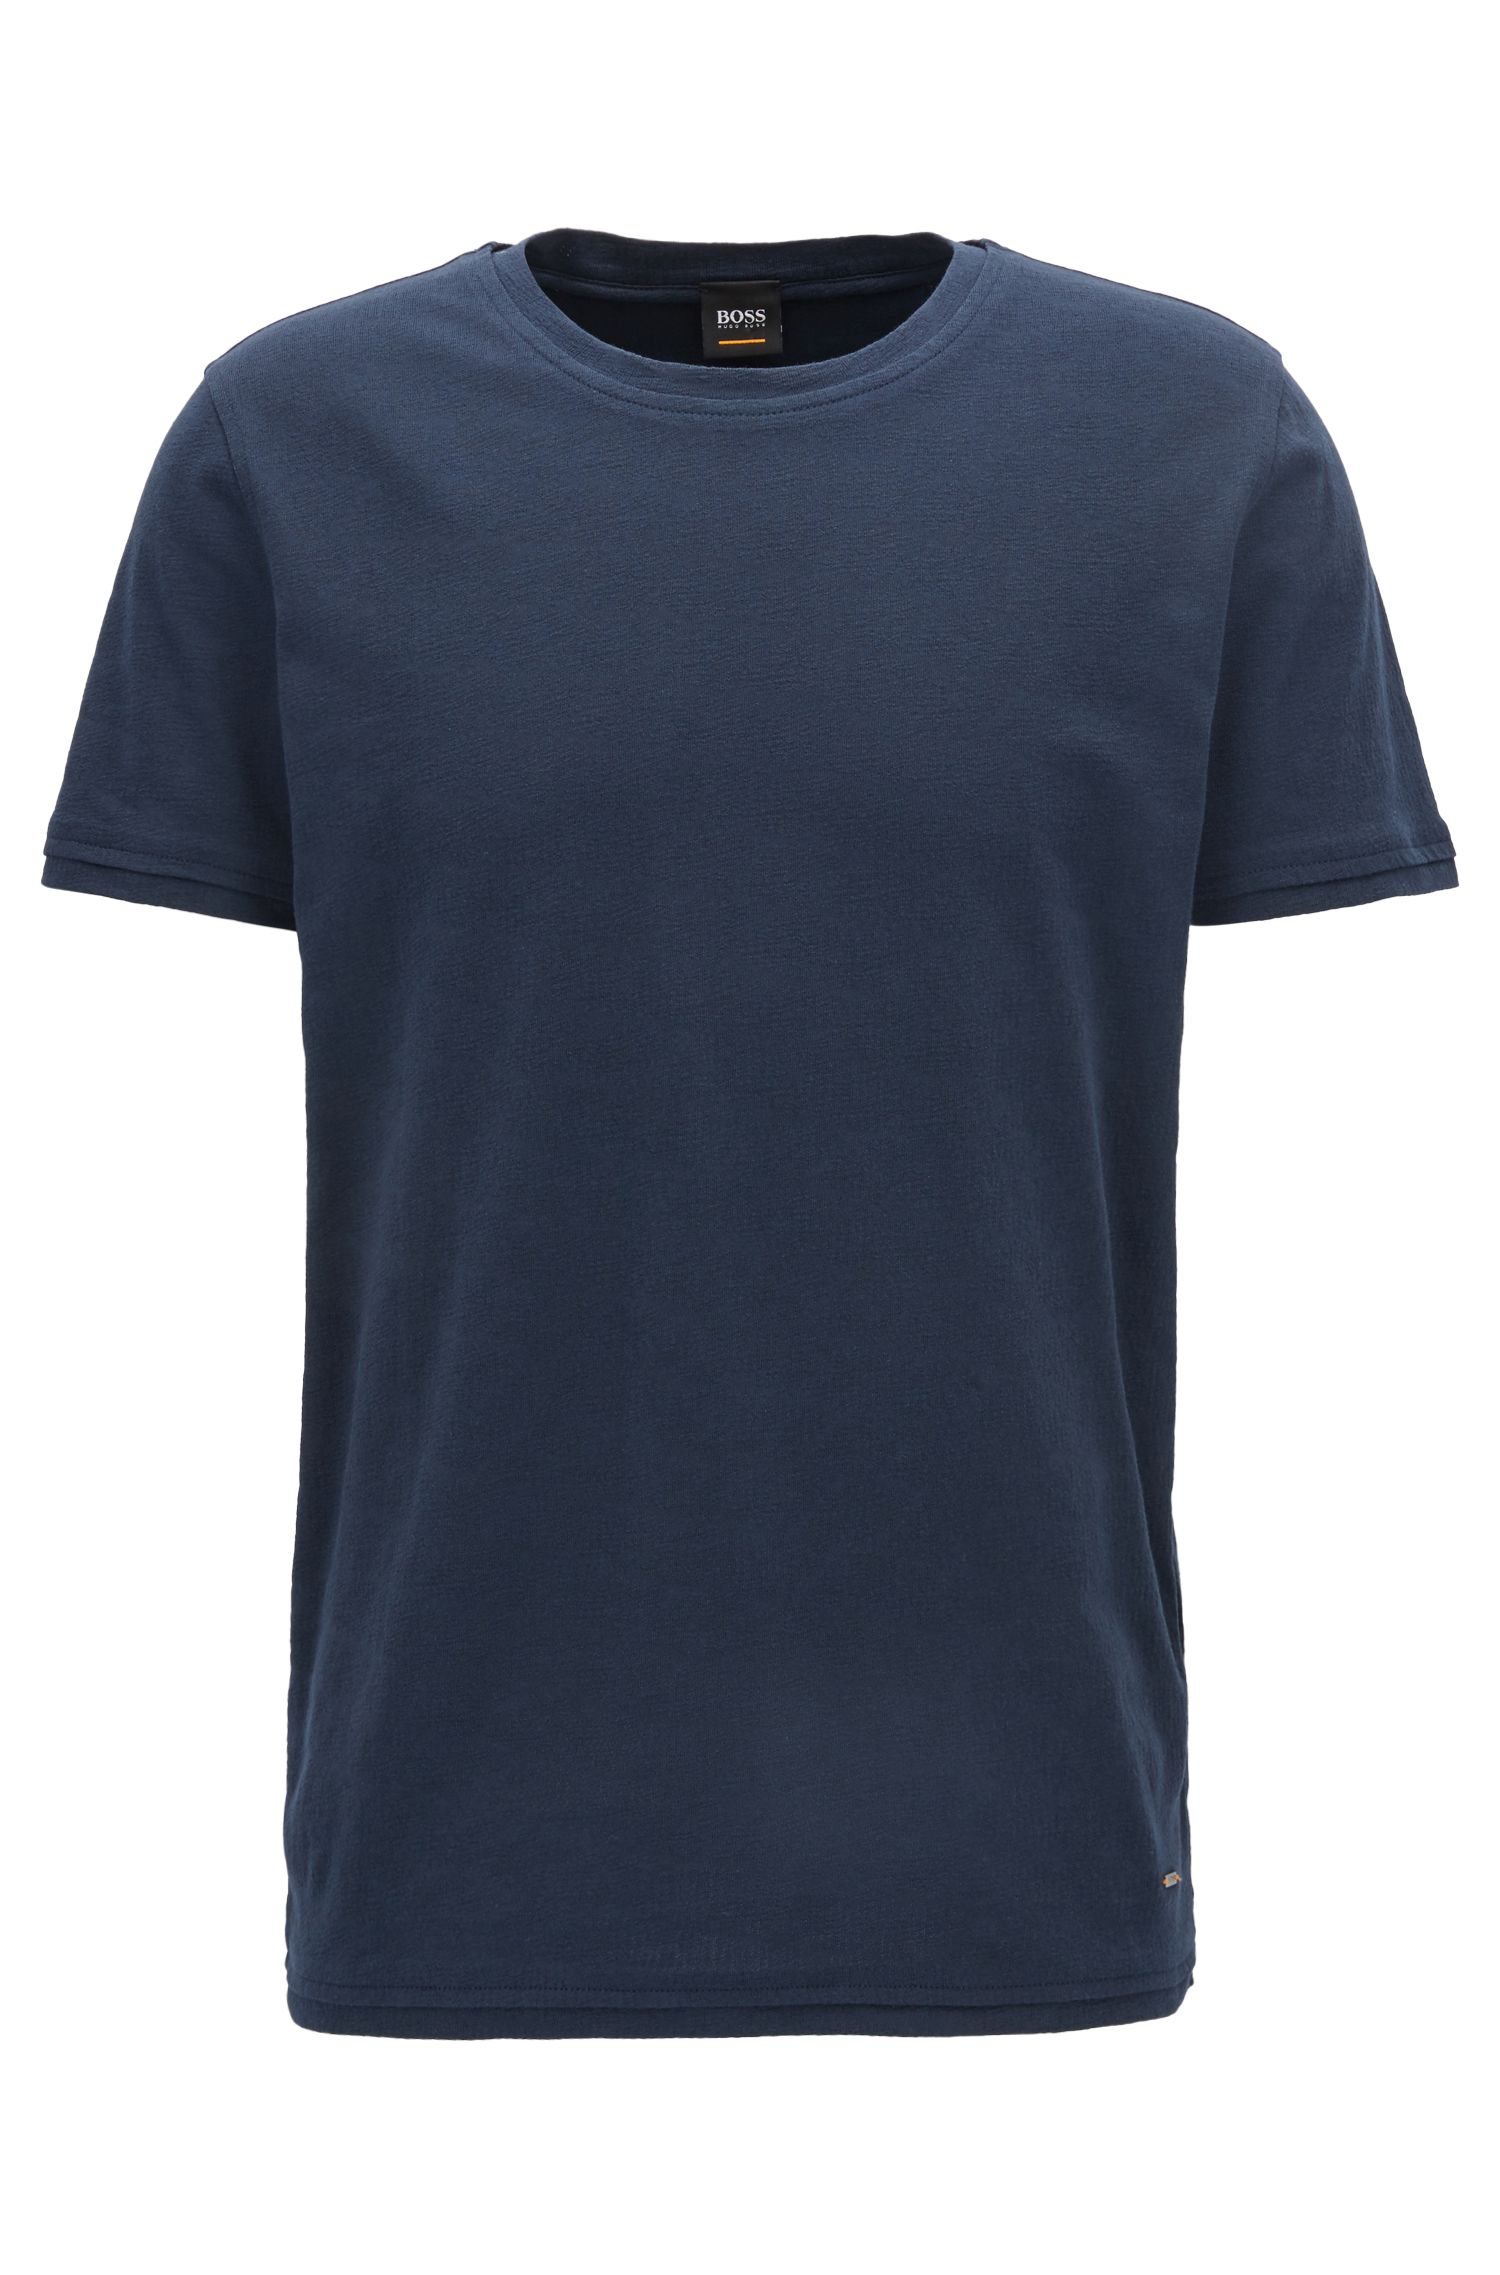 Regular-fit T-shirt in structured cotton jacquard